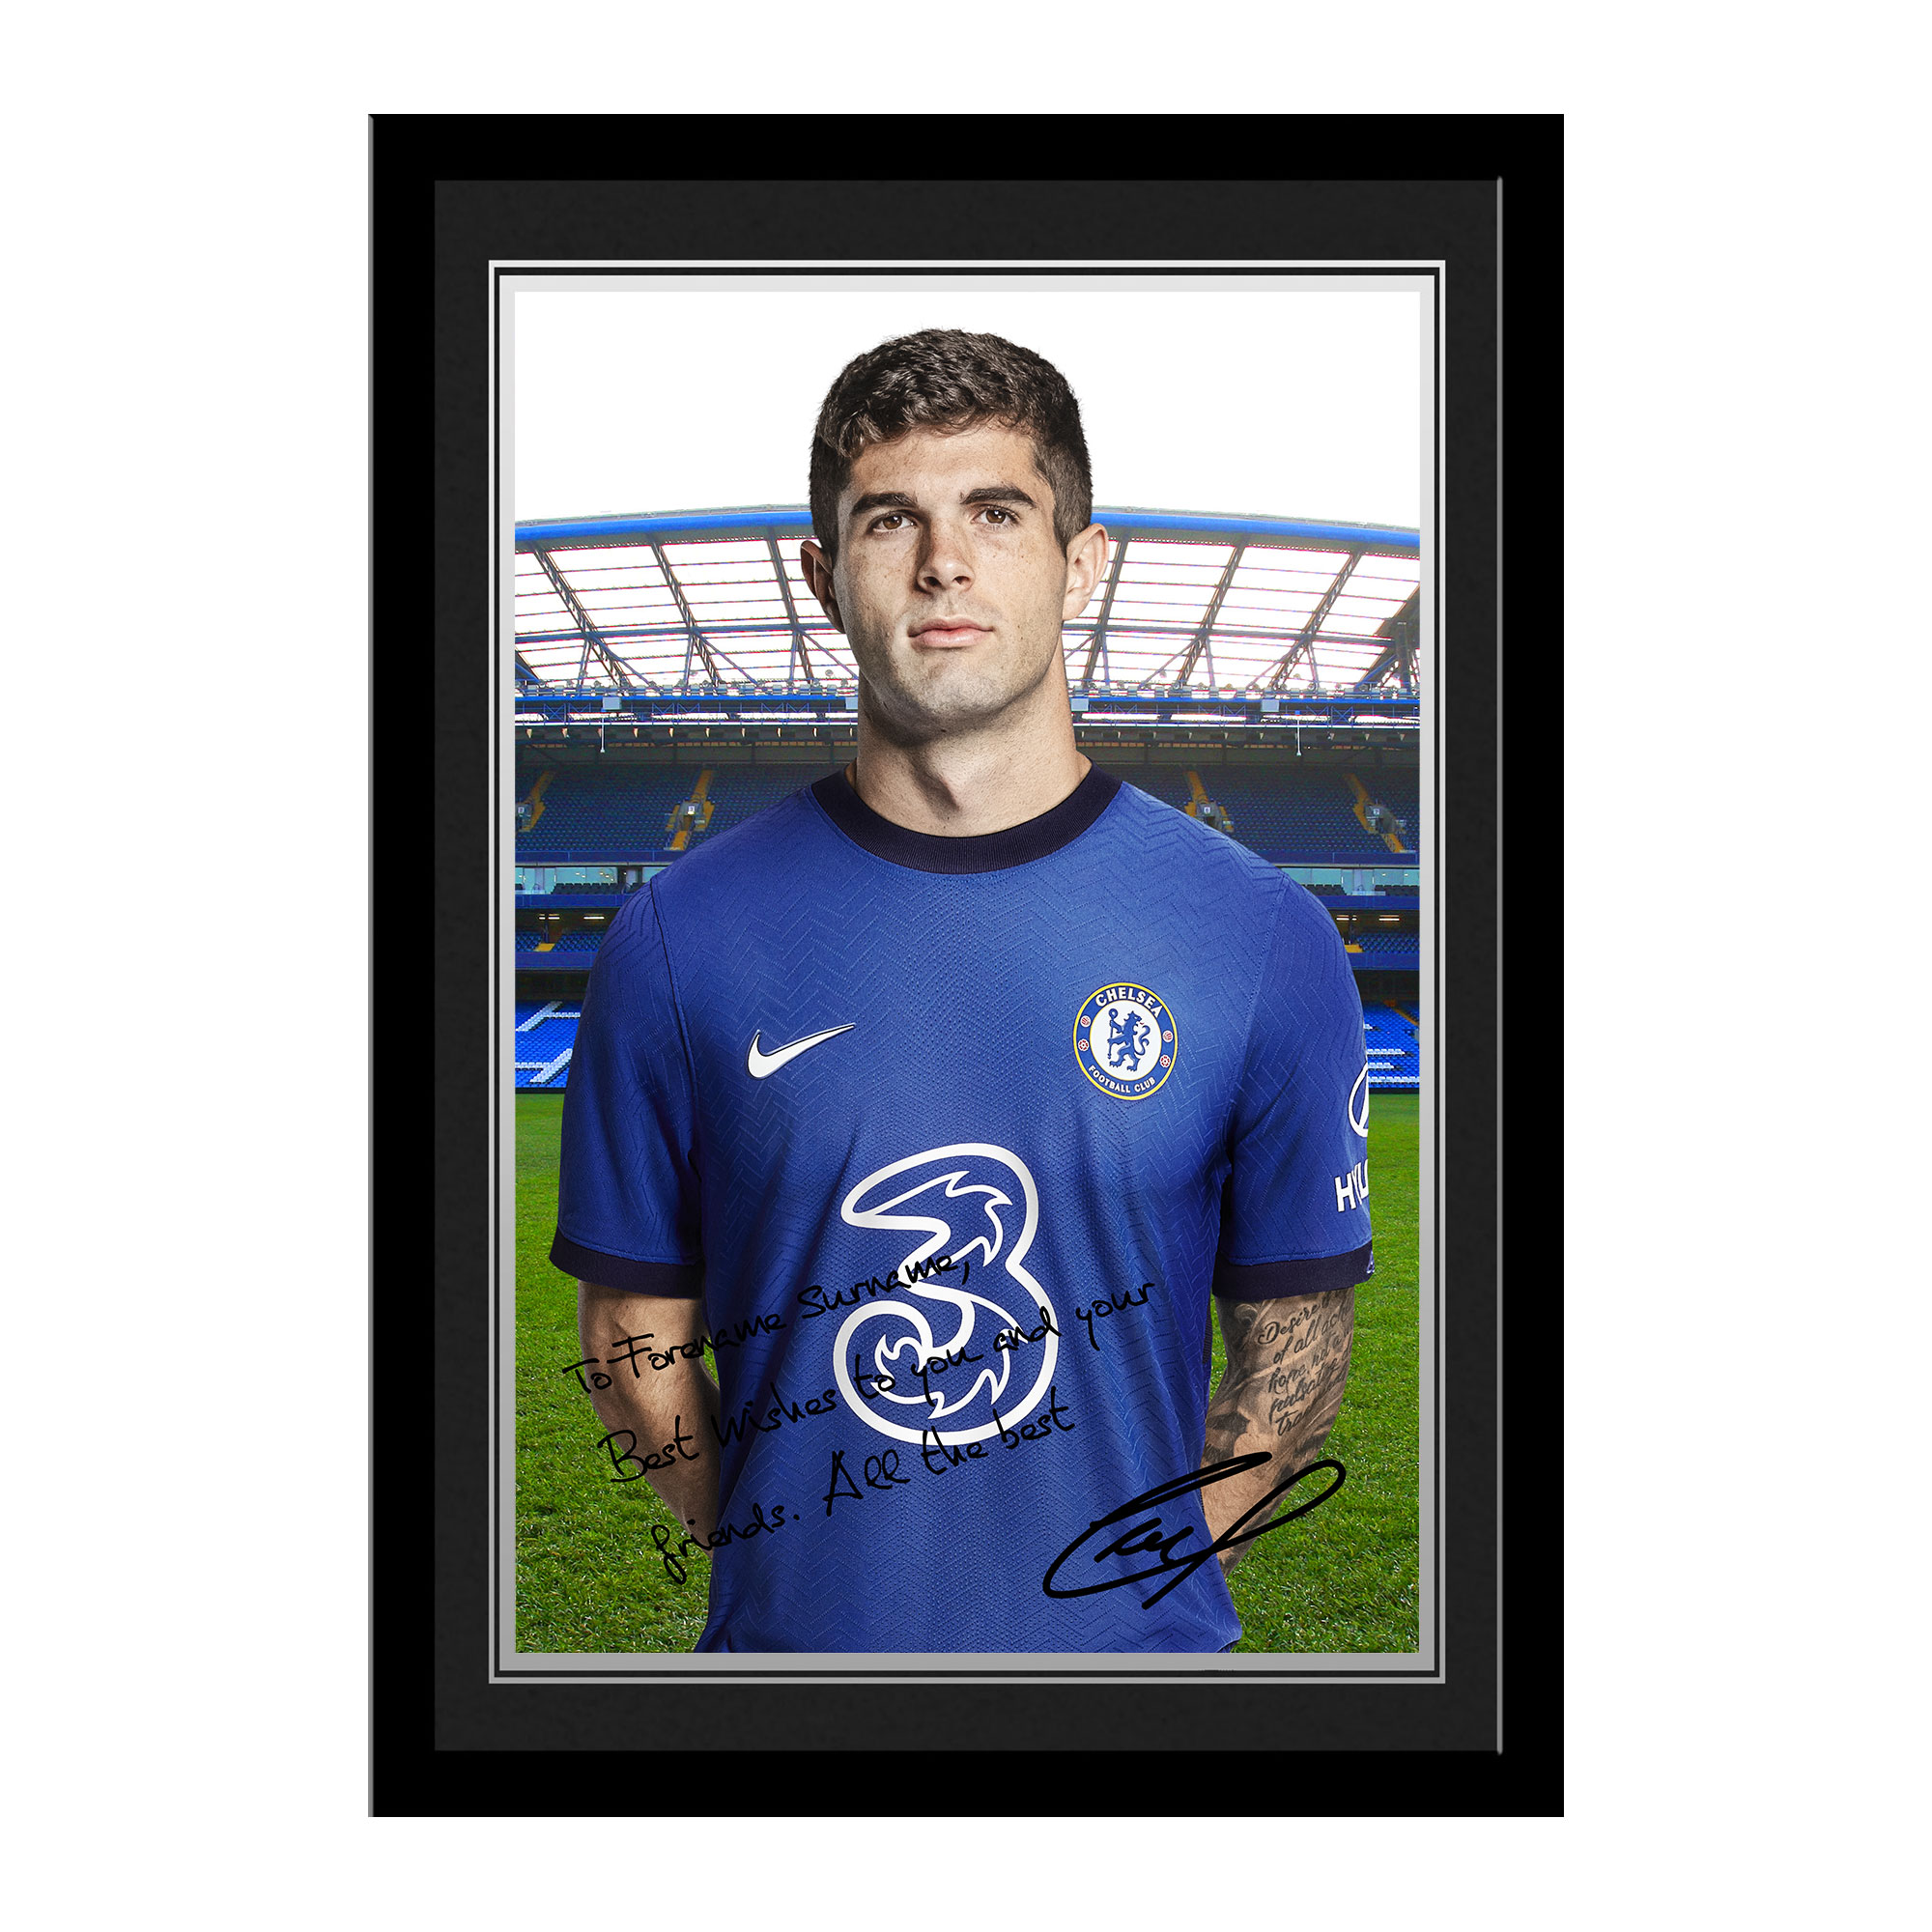 Chelsea FC Pulisic Autograph Photo Framed